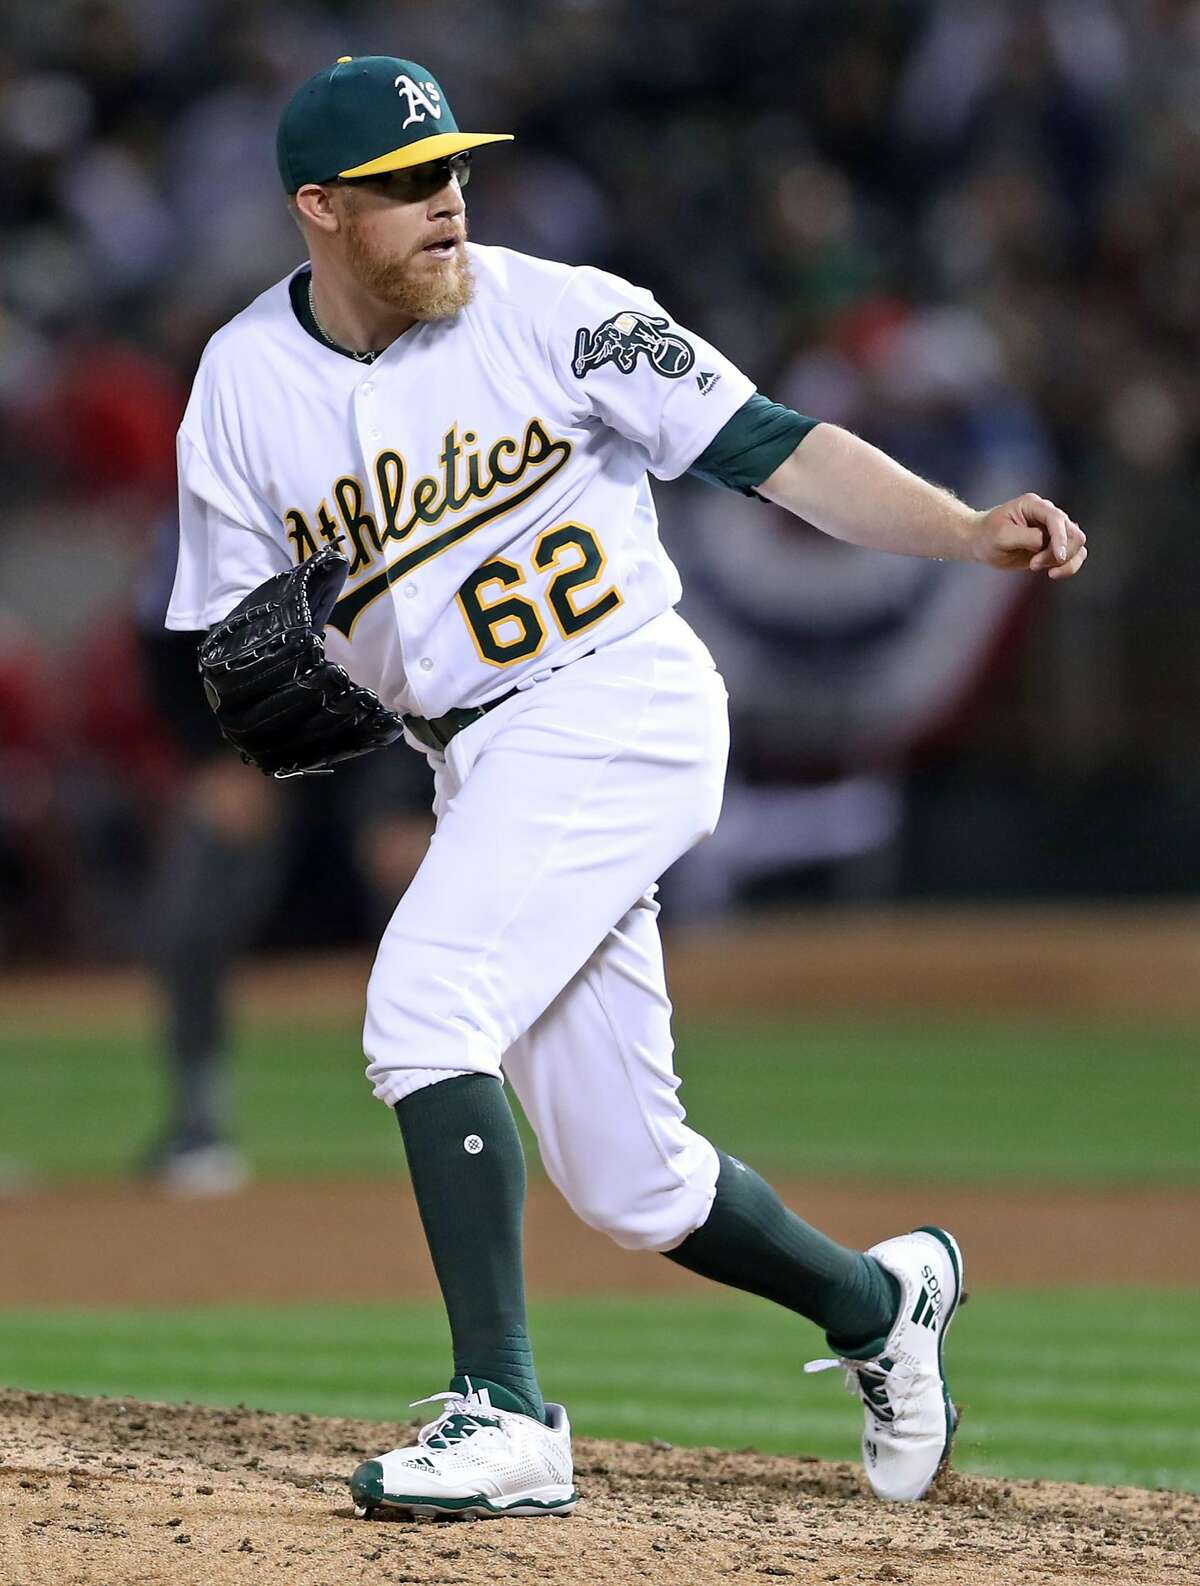 Oakland Athletics' Sean Doolittle pitches in 8th inning of 4-2 win over Anaheim Angels during A's home opener at the Oakland Coliseum in Oakland, Calif., on Monday, April 3, 2017.